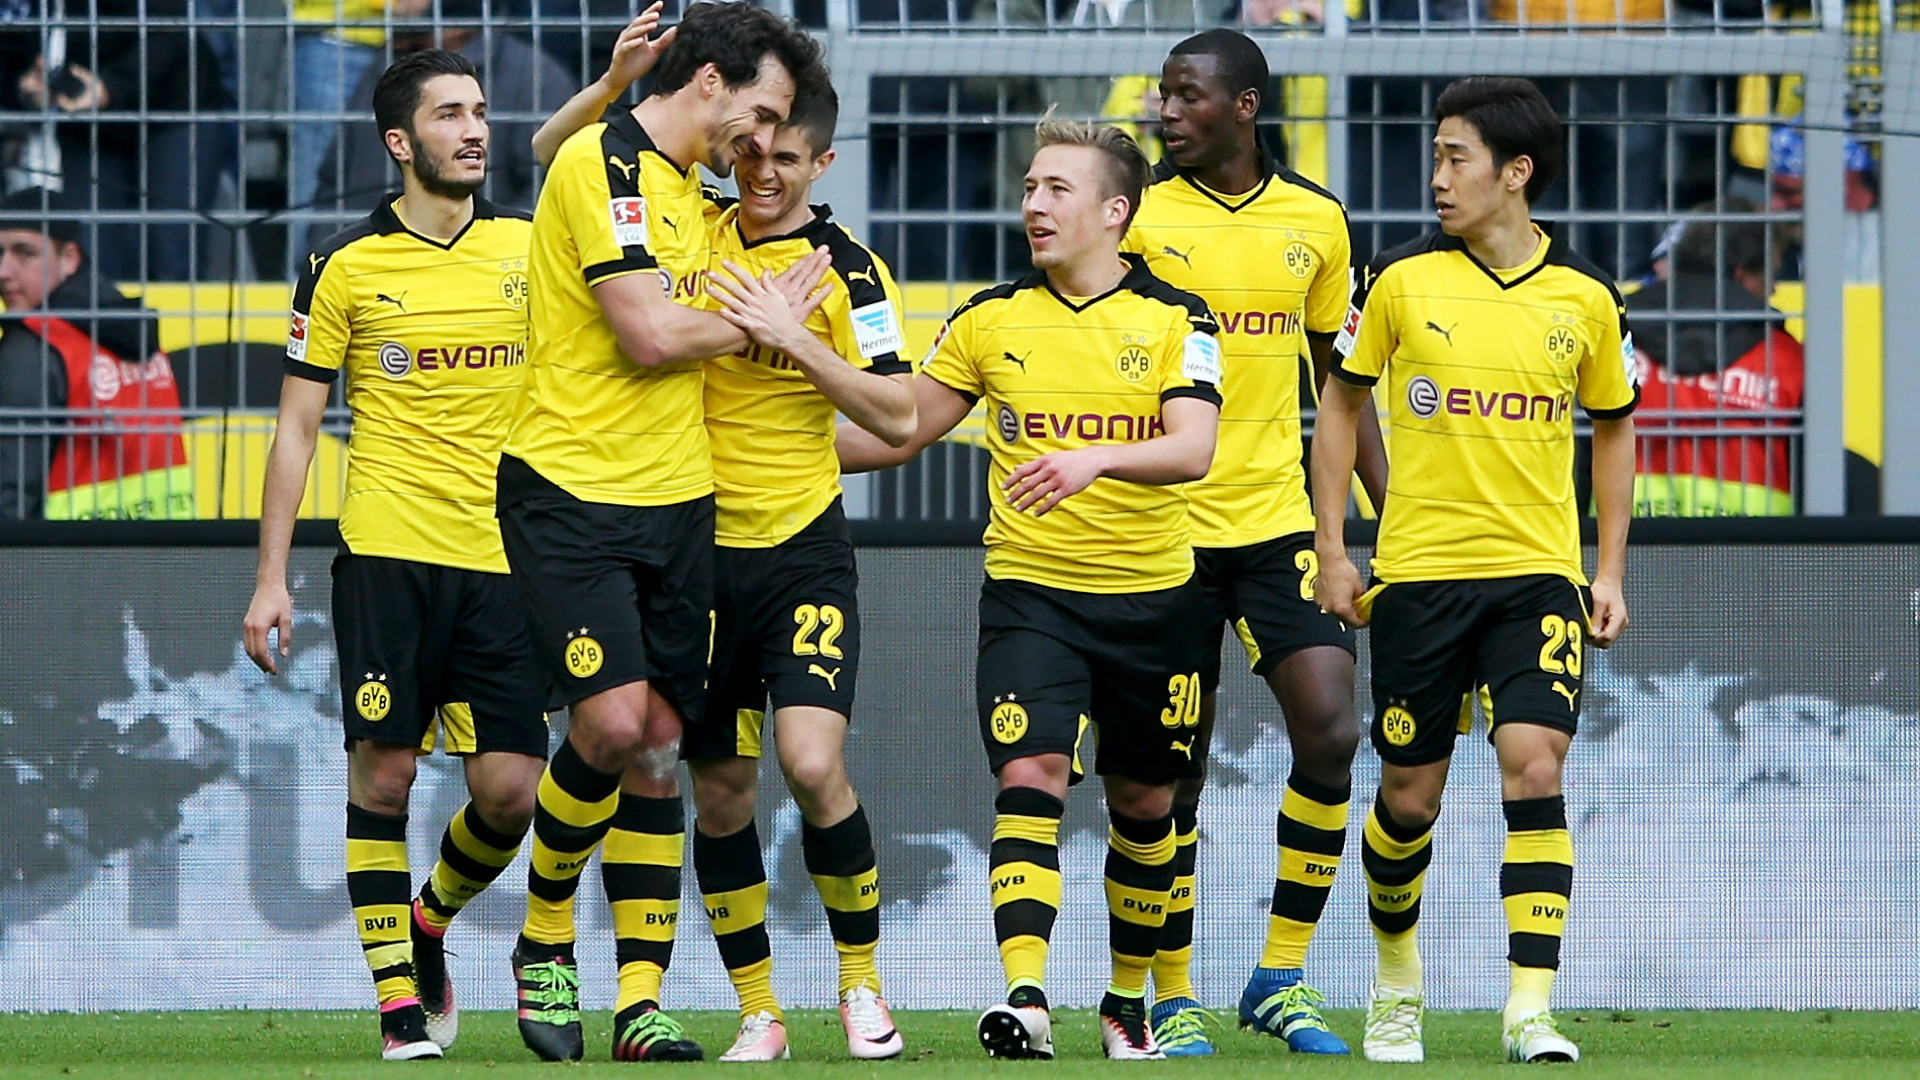 Video: Borussia Dortmund vs Hamburger SV